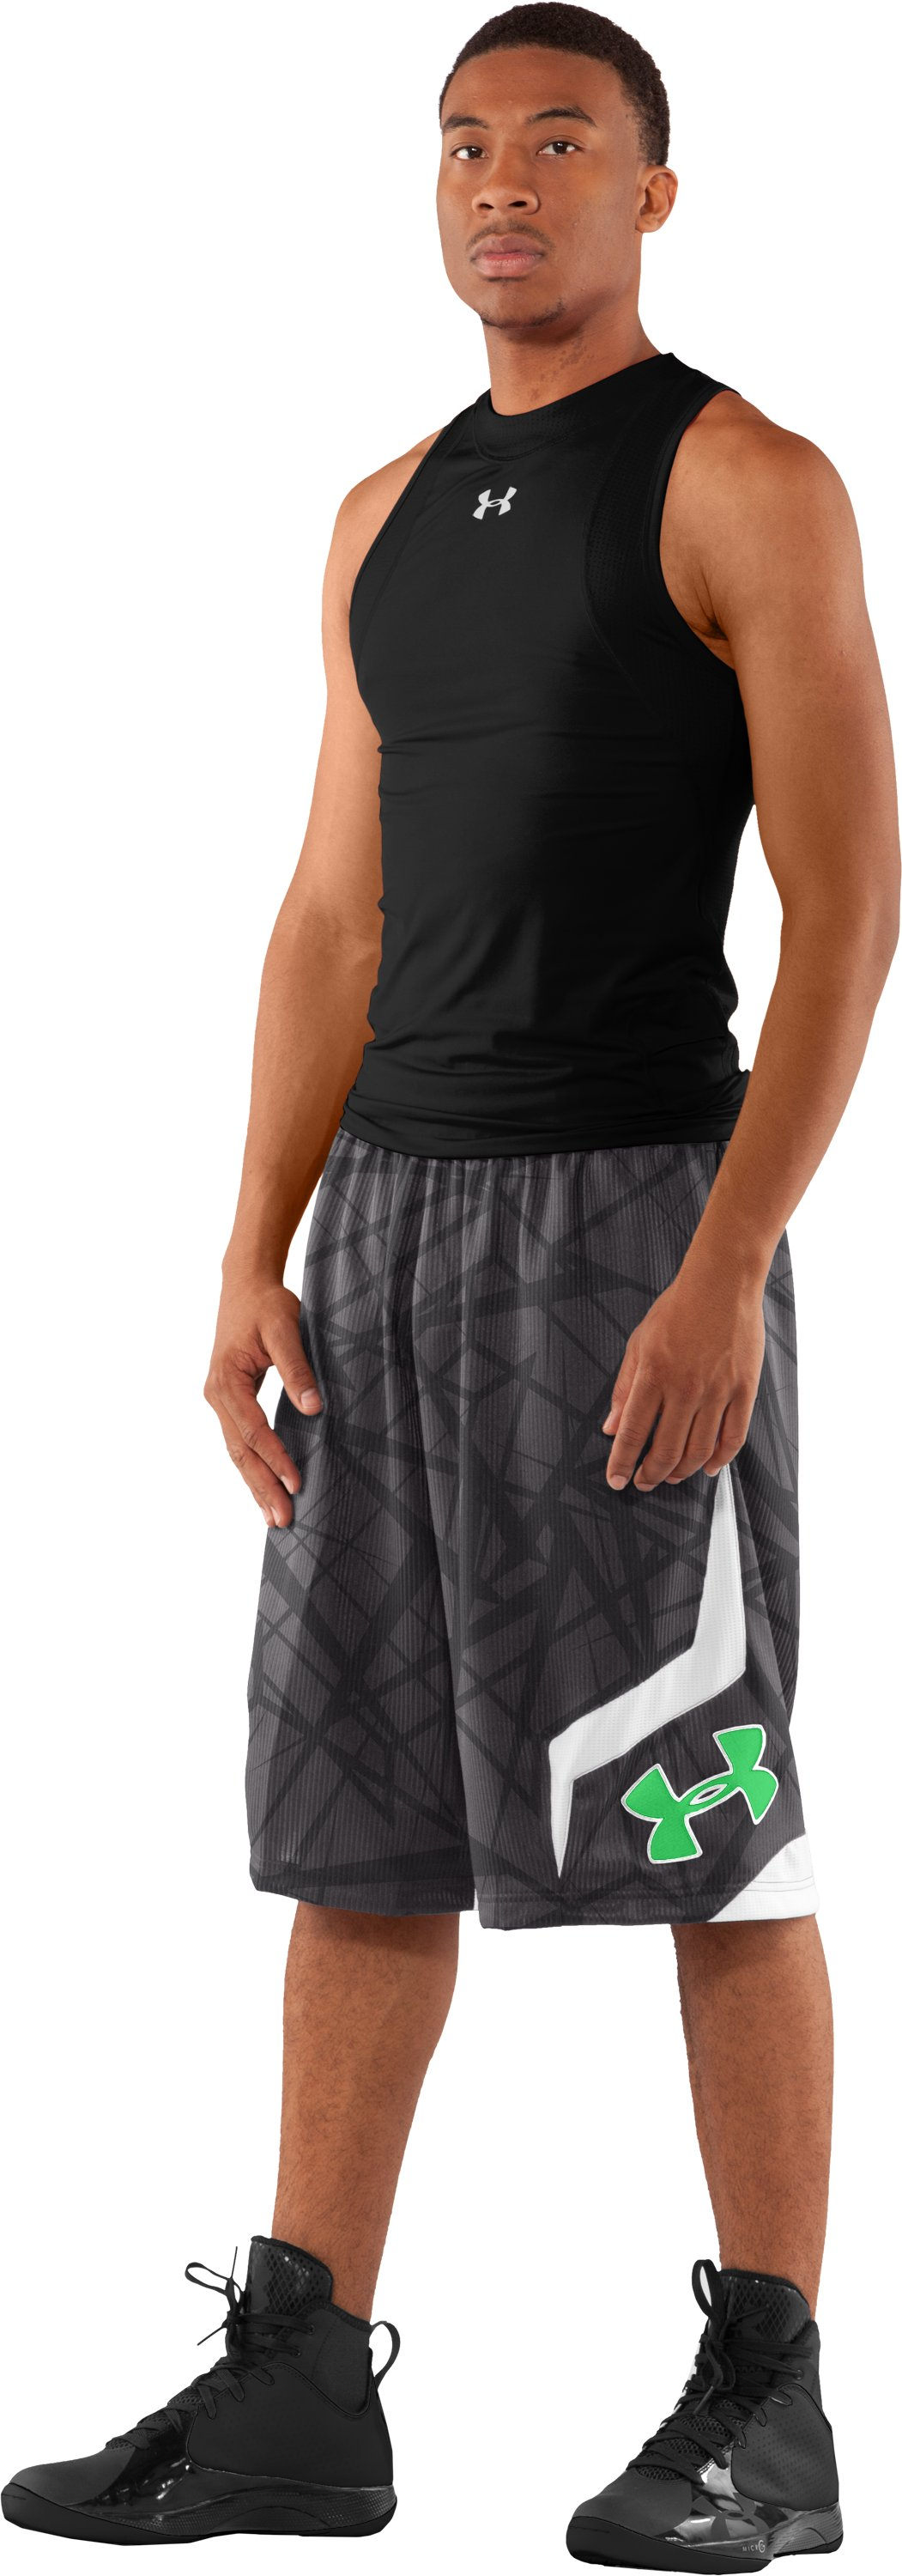 "Men's Printed UA Valkyrie 12"" Basketball Shorts, Charcoal, zoomed image"